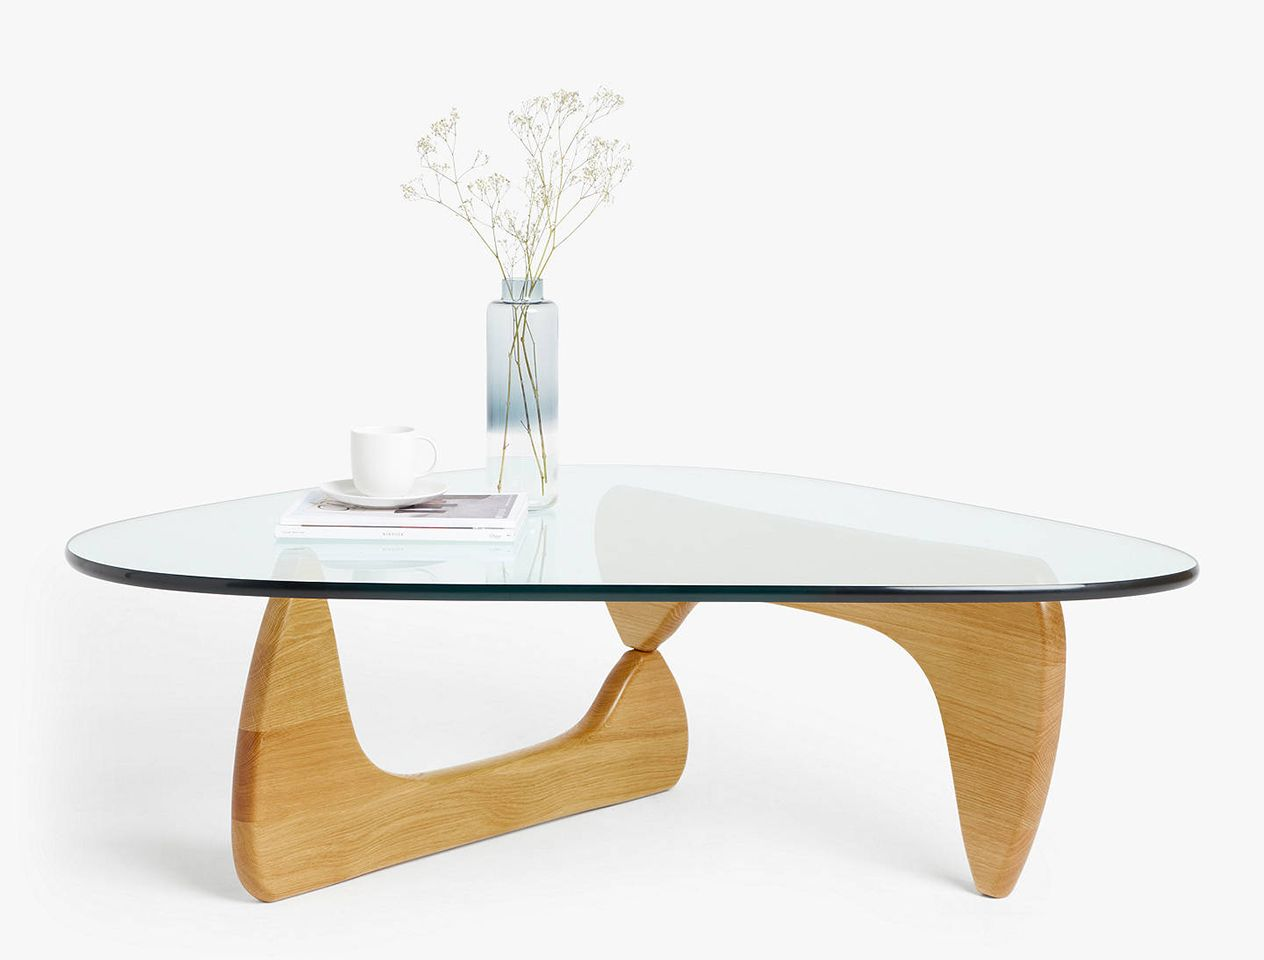 Admirable About Vitra History The Brand Behind Some Of Our Most Loved Download Free Architecture Designs Scobabritishbridgeorg